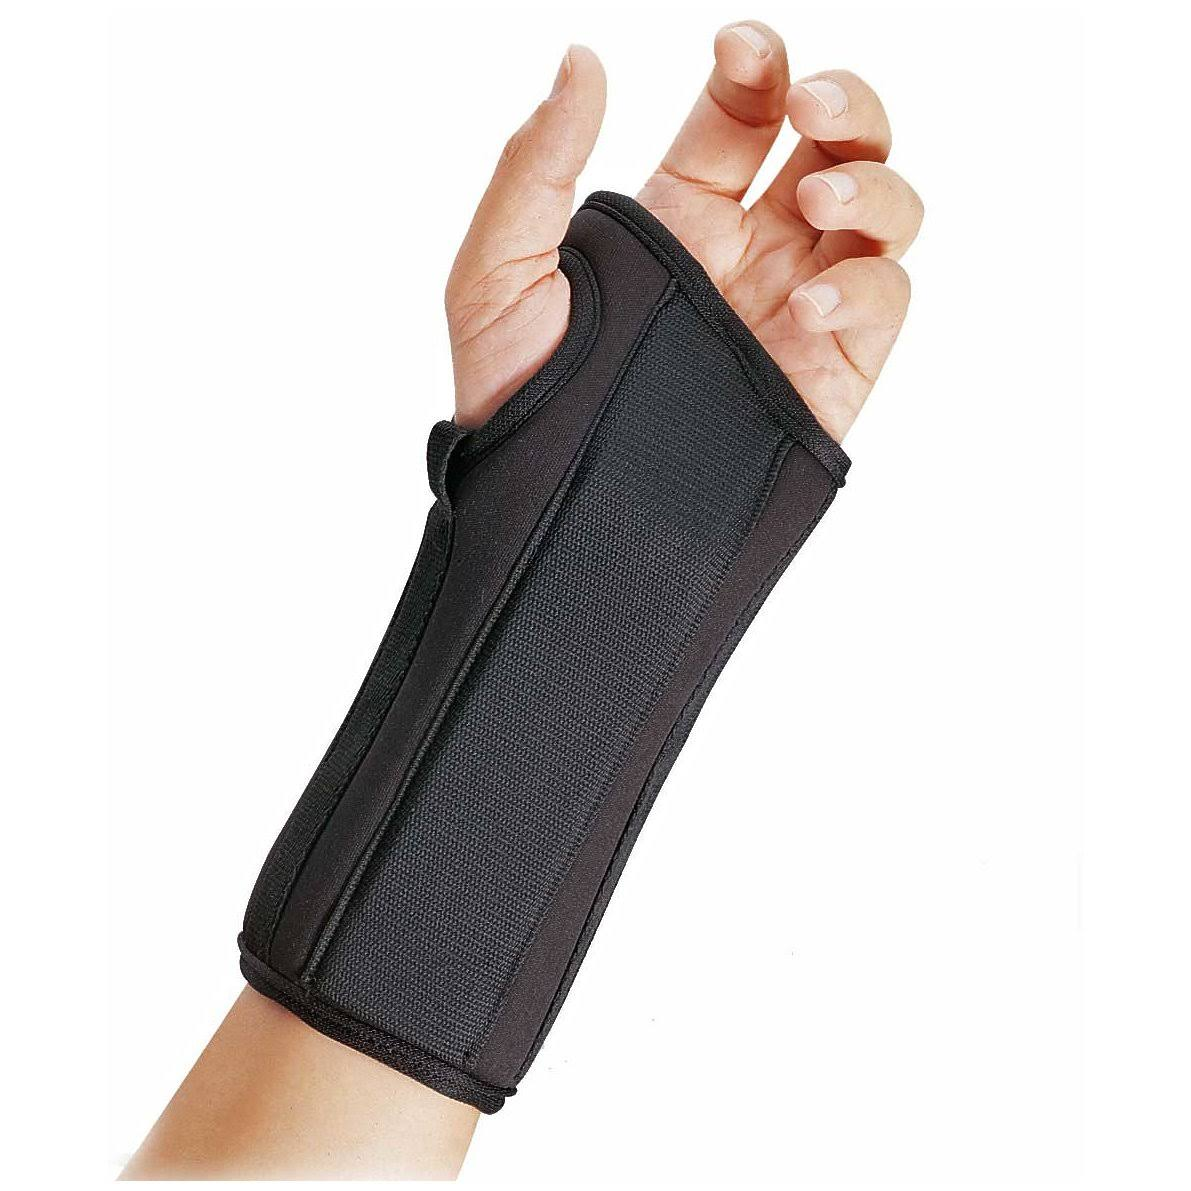 "Fla Pro Lite Orthopedics Wrist Splint - 8"", Medium, Left"